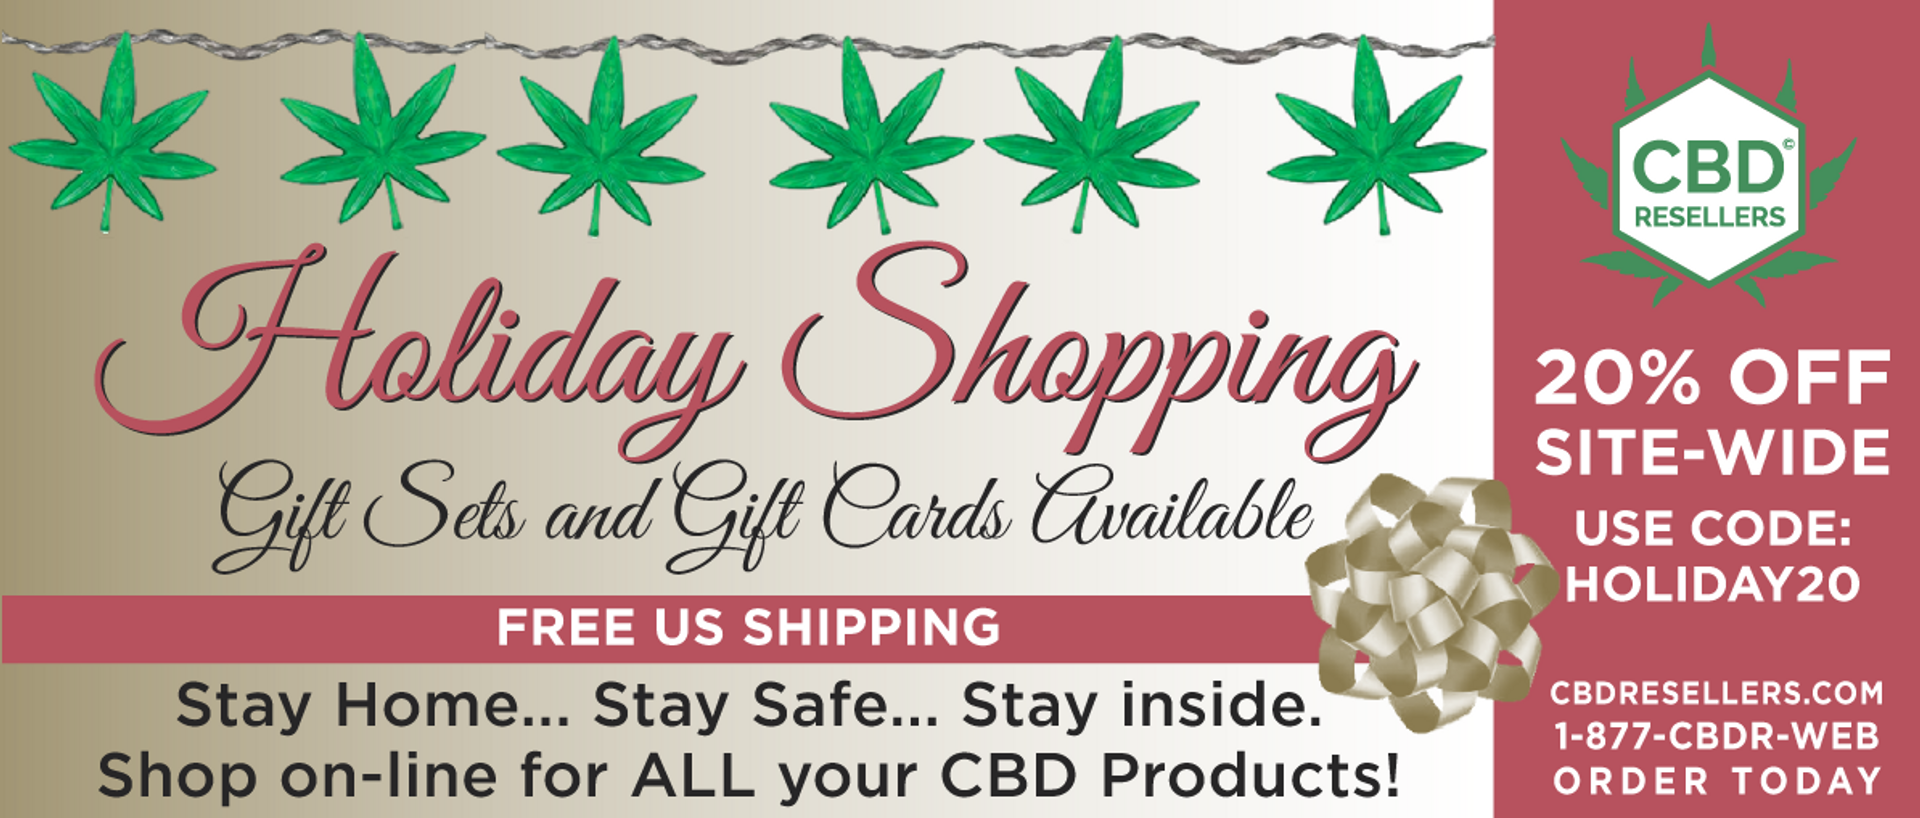 happy holidays | CBDresellers 20% off site-wide |  All CBD products